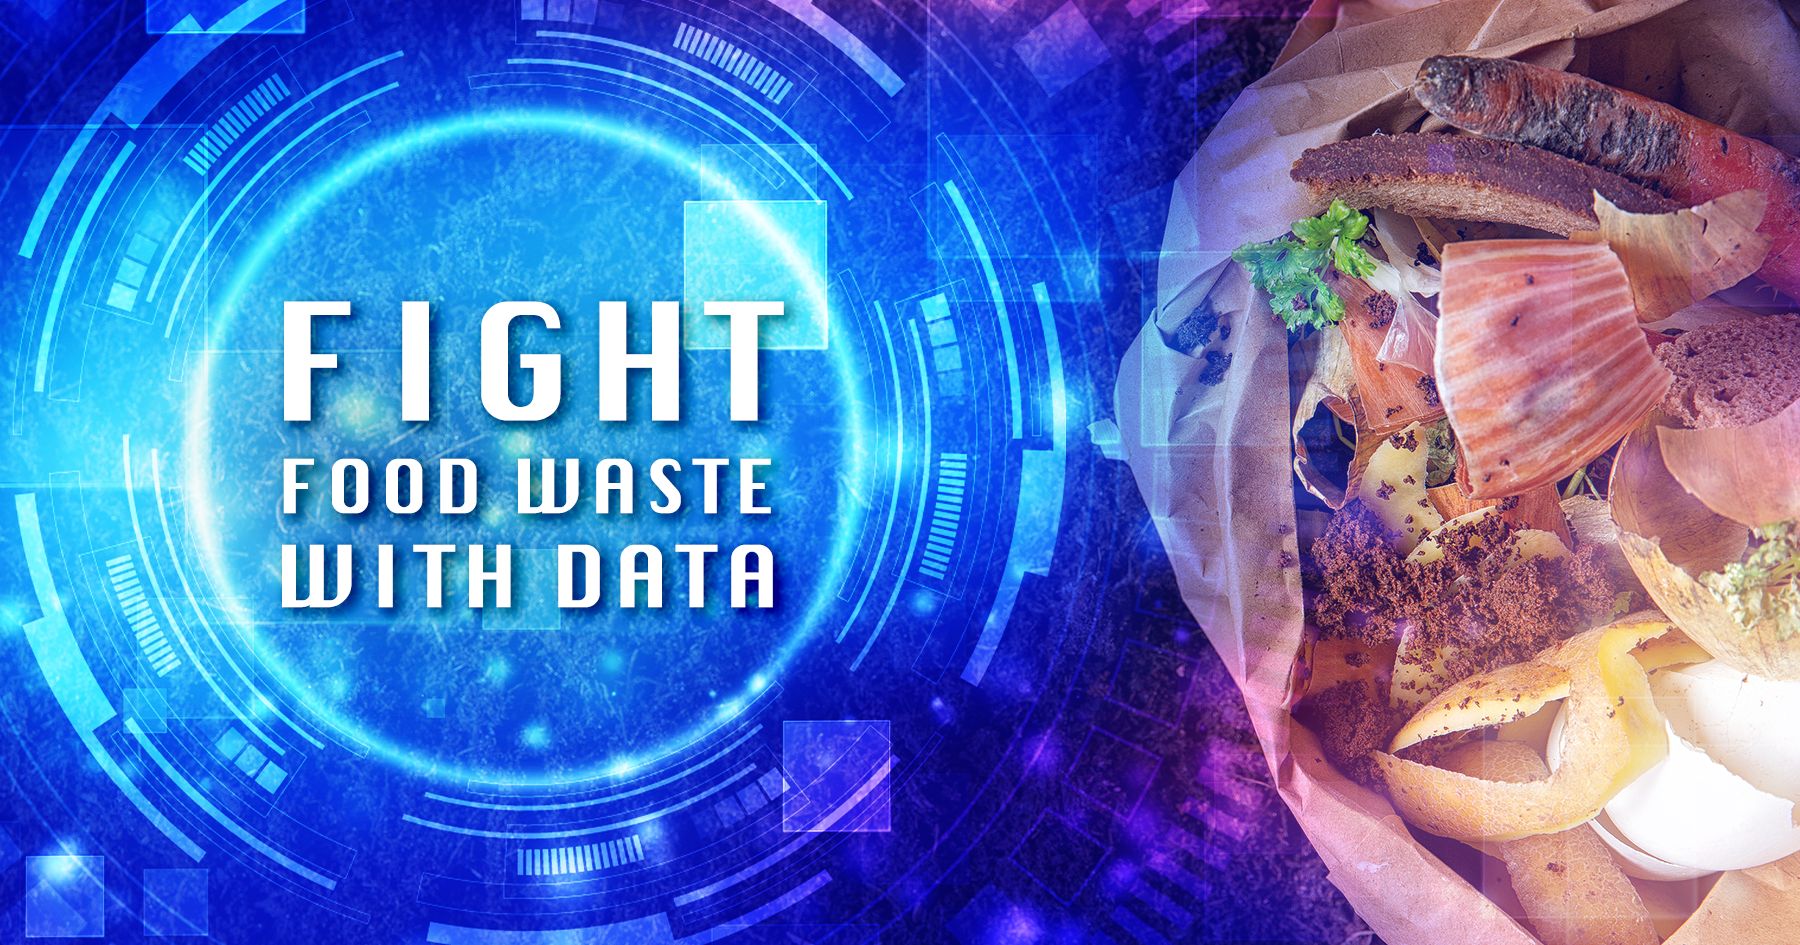 Companies Fight Food Waste With Data